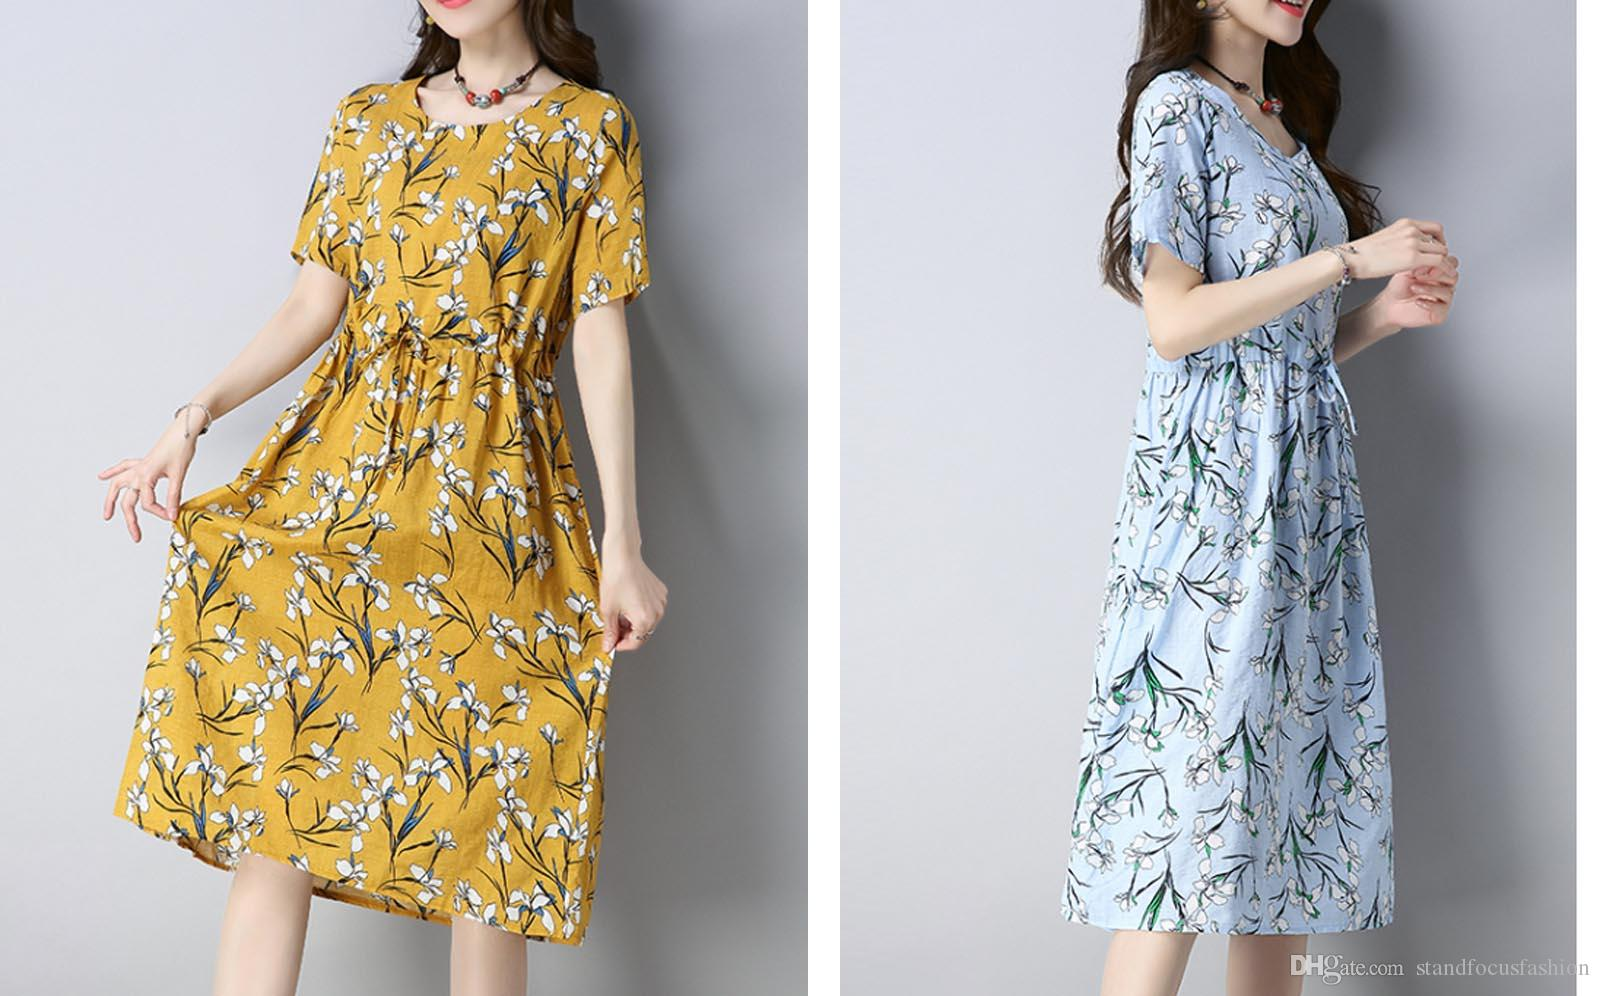 eaa9ad53ea6 2019 Stand Focus Women Ladies Floral Sundress Midi Dress Short Sleeve Loose  Long Mid Calf Tie Waist Light Blue Spring Summer From Standfocusfashion